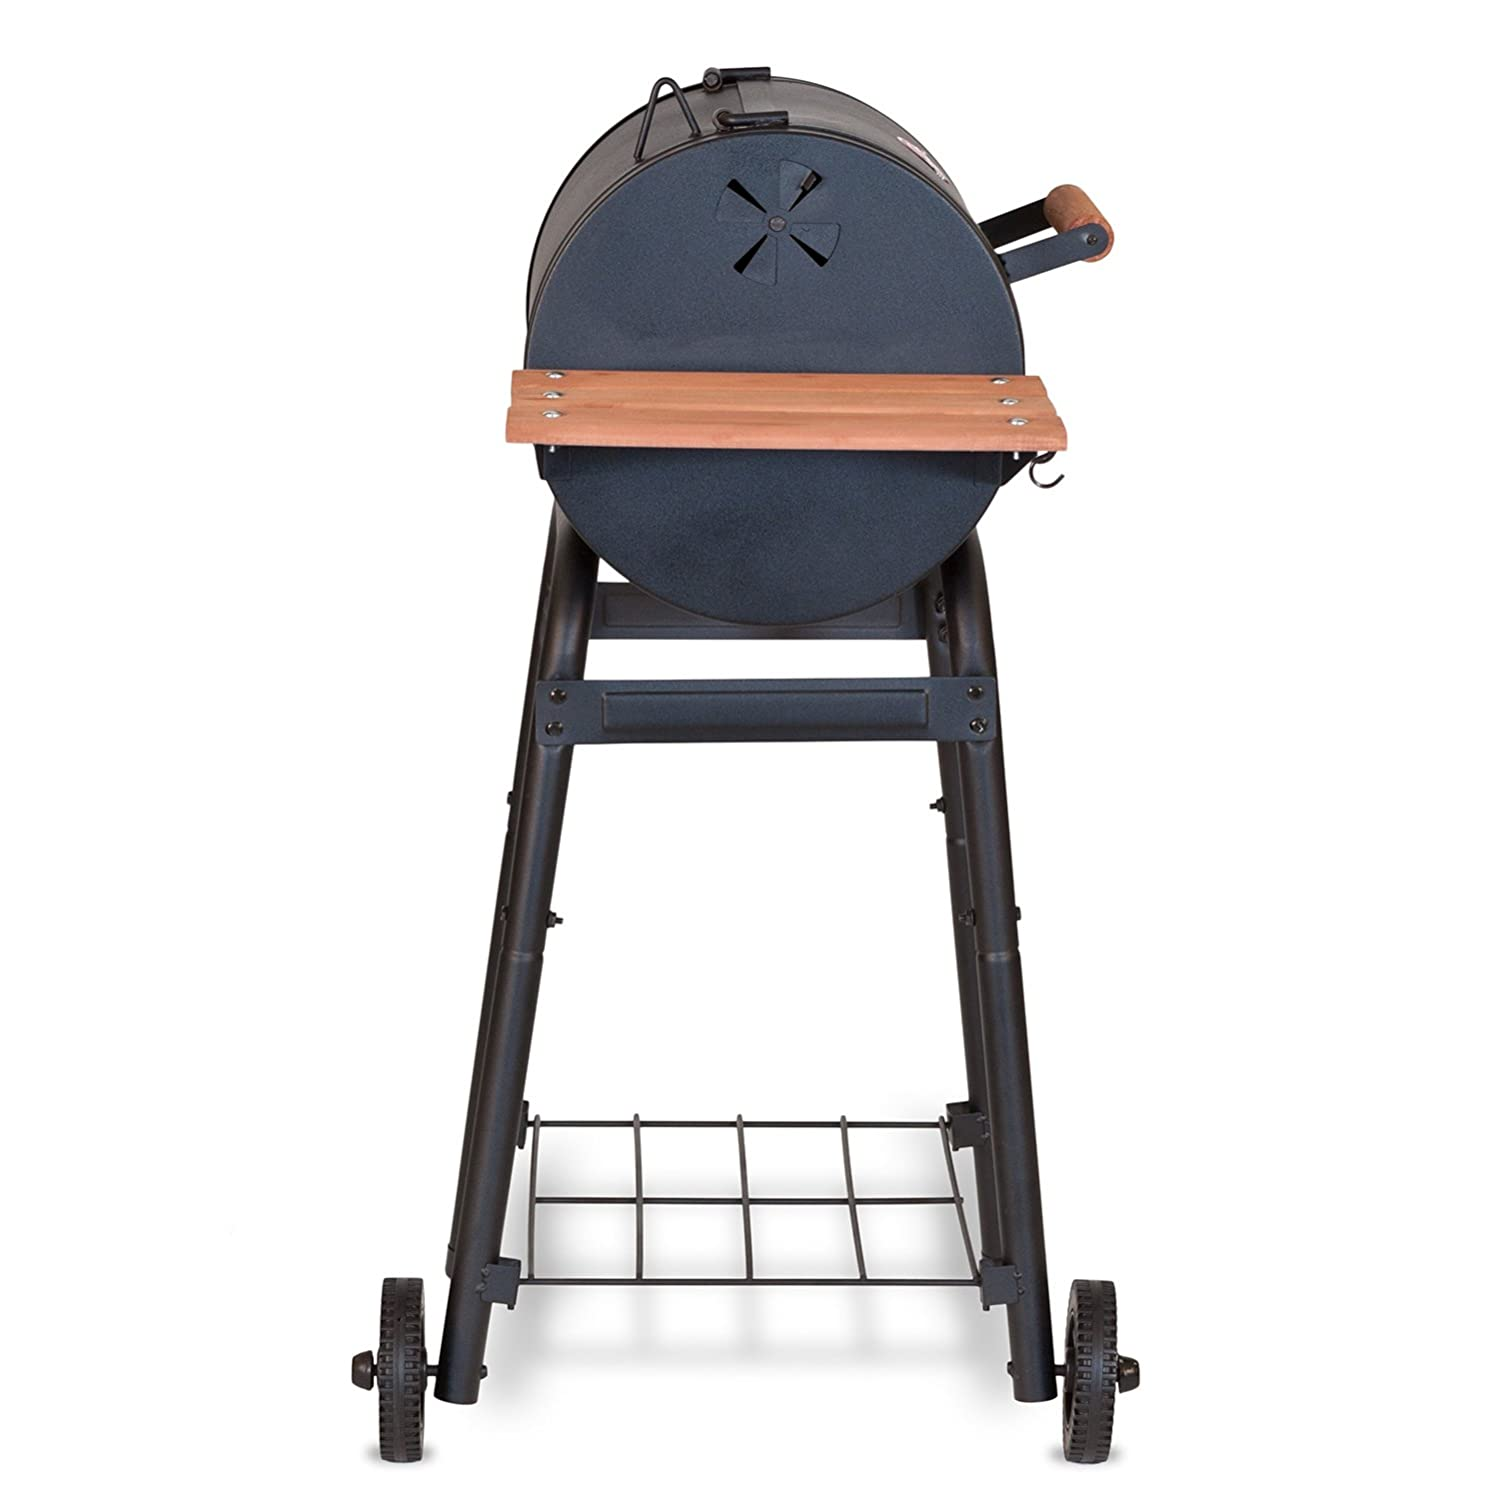 Char-Griller E1515 Patio Pro Charcoal Grill Black Grills & Outdoor ...